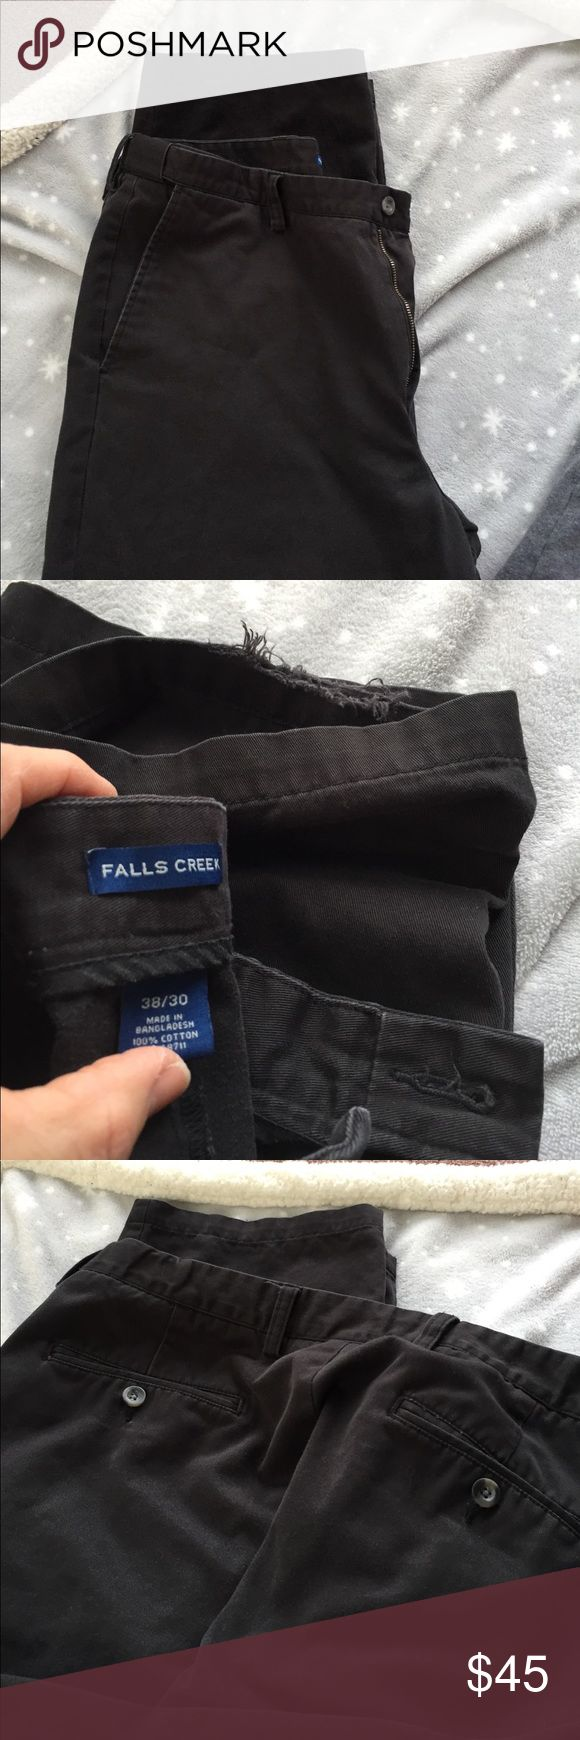 """2 pair of Men's Black pants Falls Creek Looking for the right person will bundle all the men's pants for a ridiculously cheap price!2 pair of men's gently used black khaki pants with pleats no stains just slight wear on the bottom of one pant leg barely noticeable in excellent condition for reuse. Waist is 38""""-29"""" inseam one is 30"""" inseam Falls Creek Jeans Relaxed"""